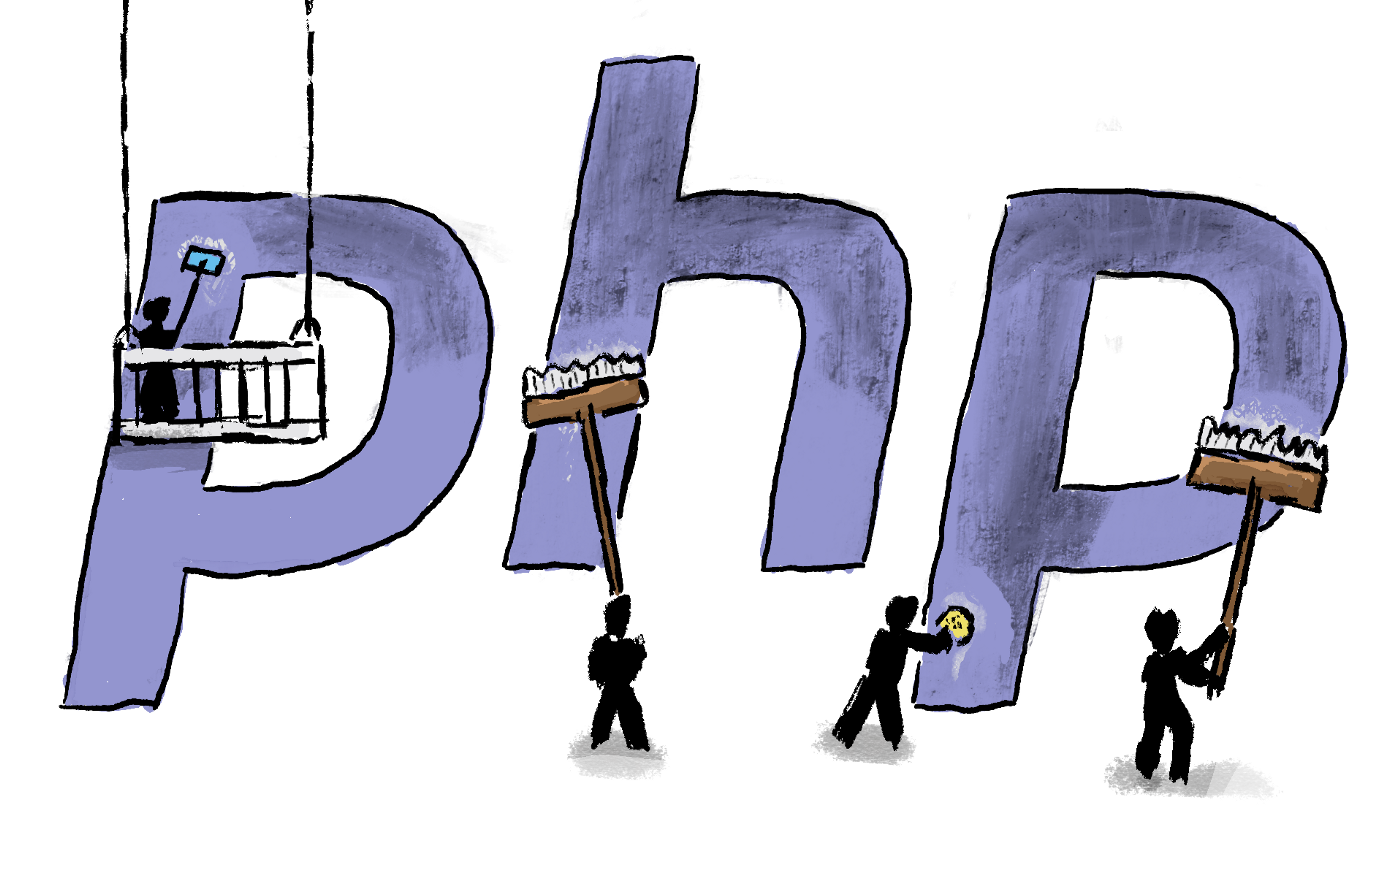 Small people cleaning up the PHP logo